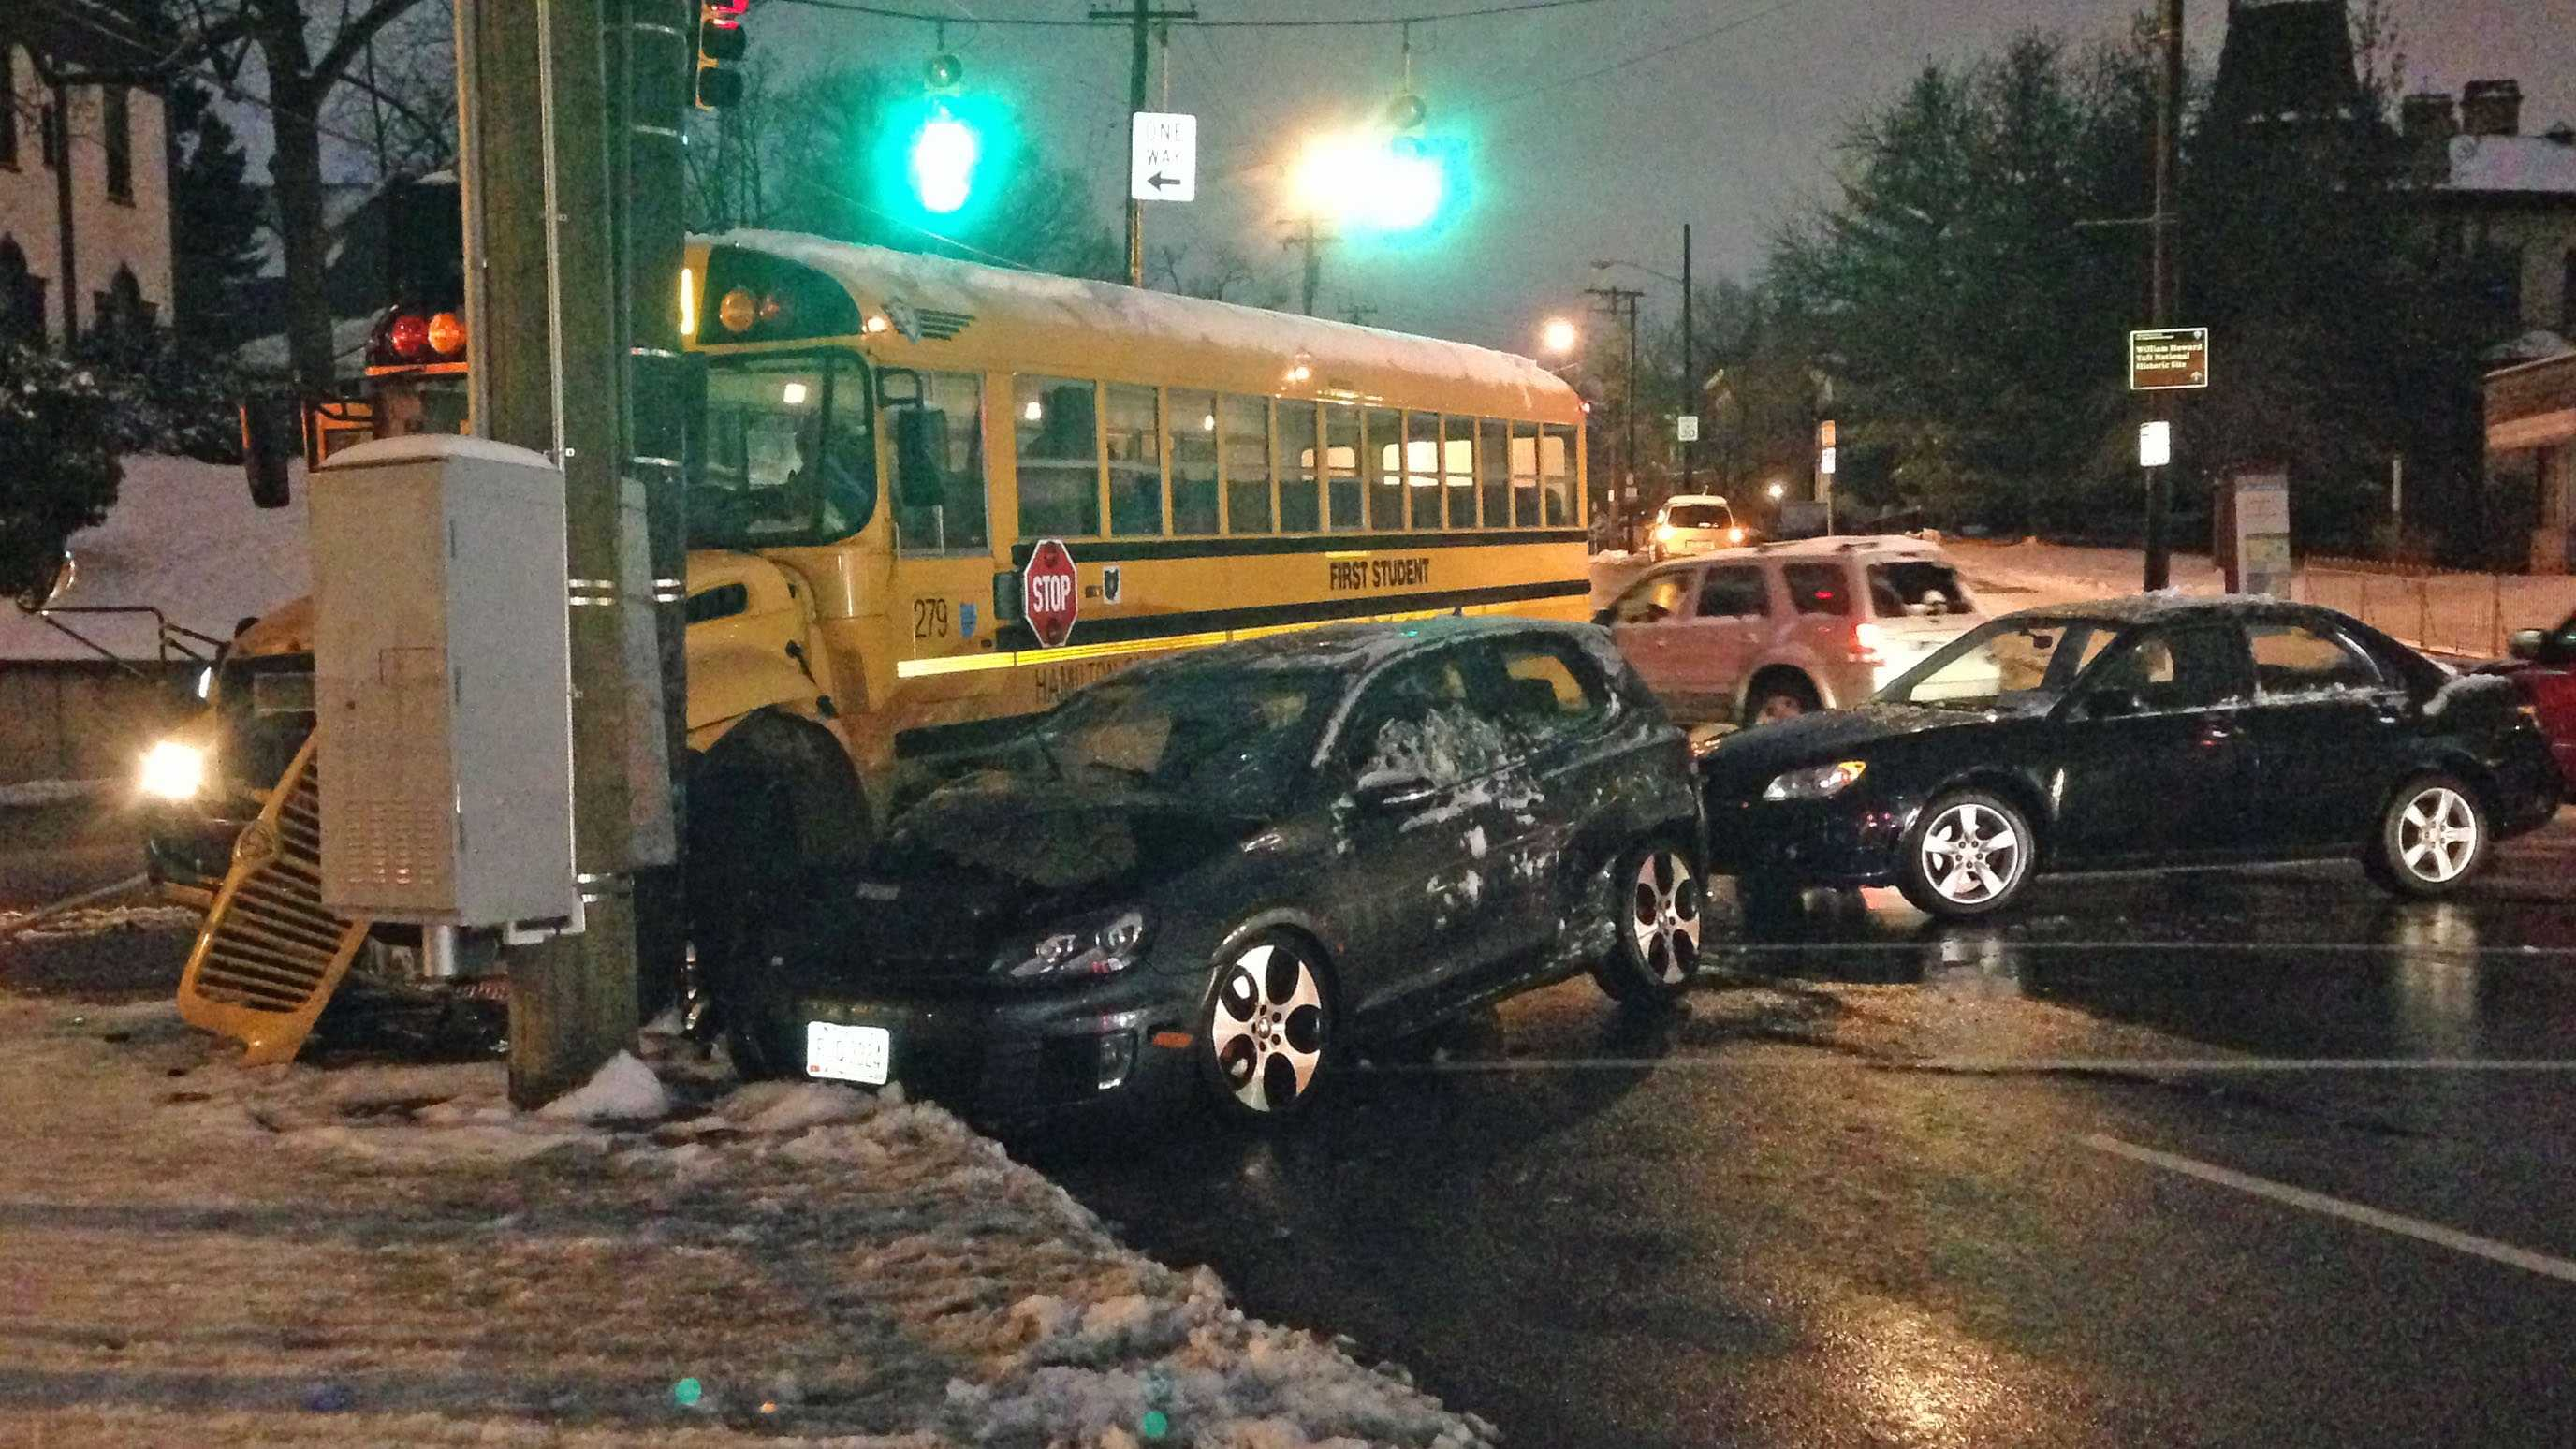 School bus crash 1.jpg